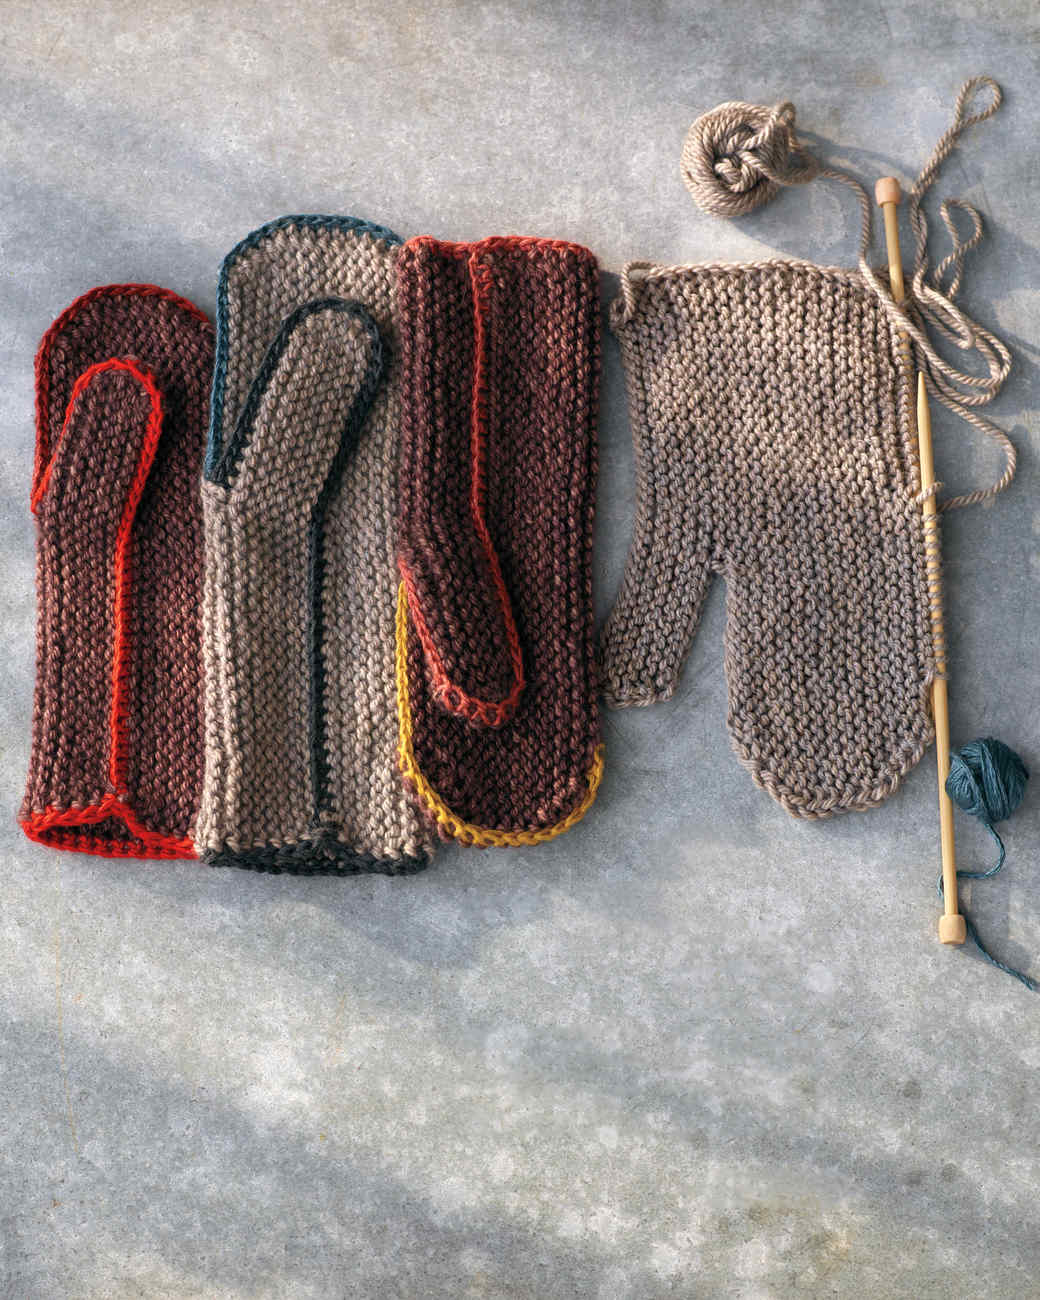 knit-mittens-313r-md110598.jpg